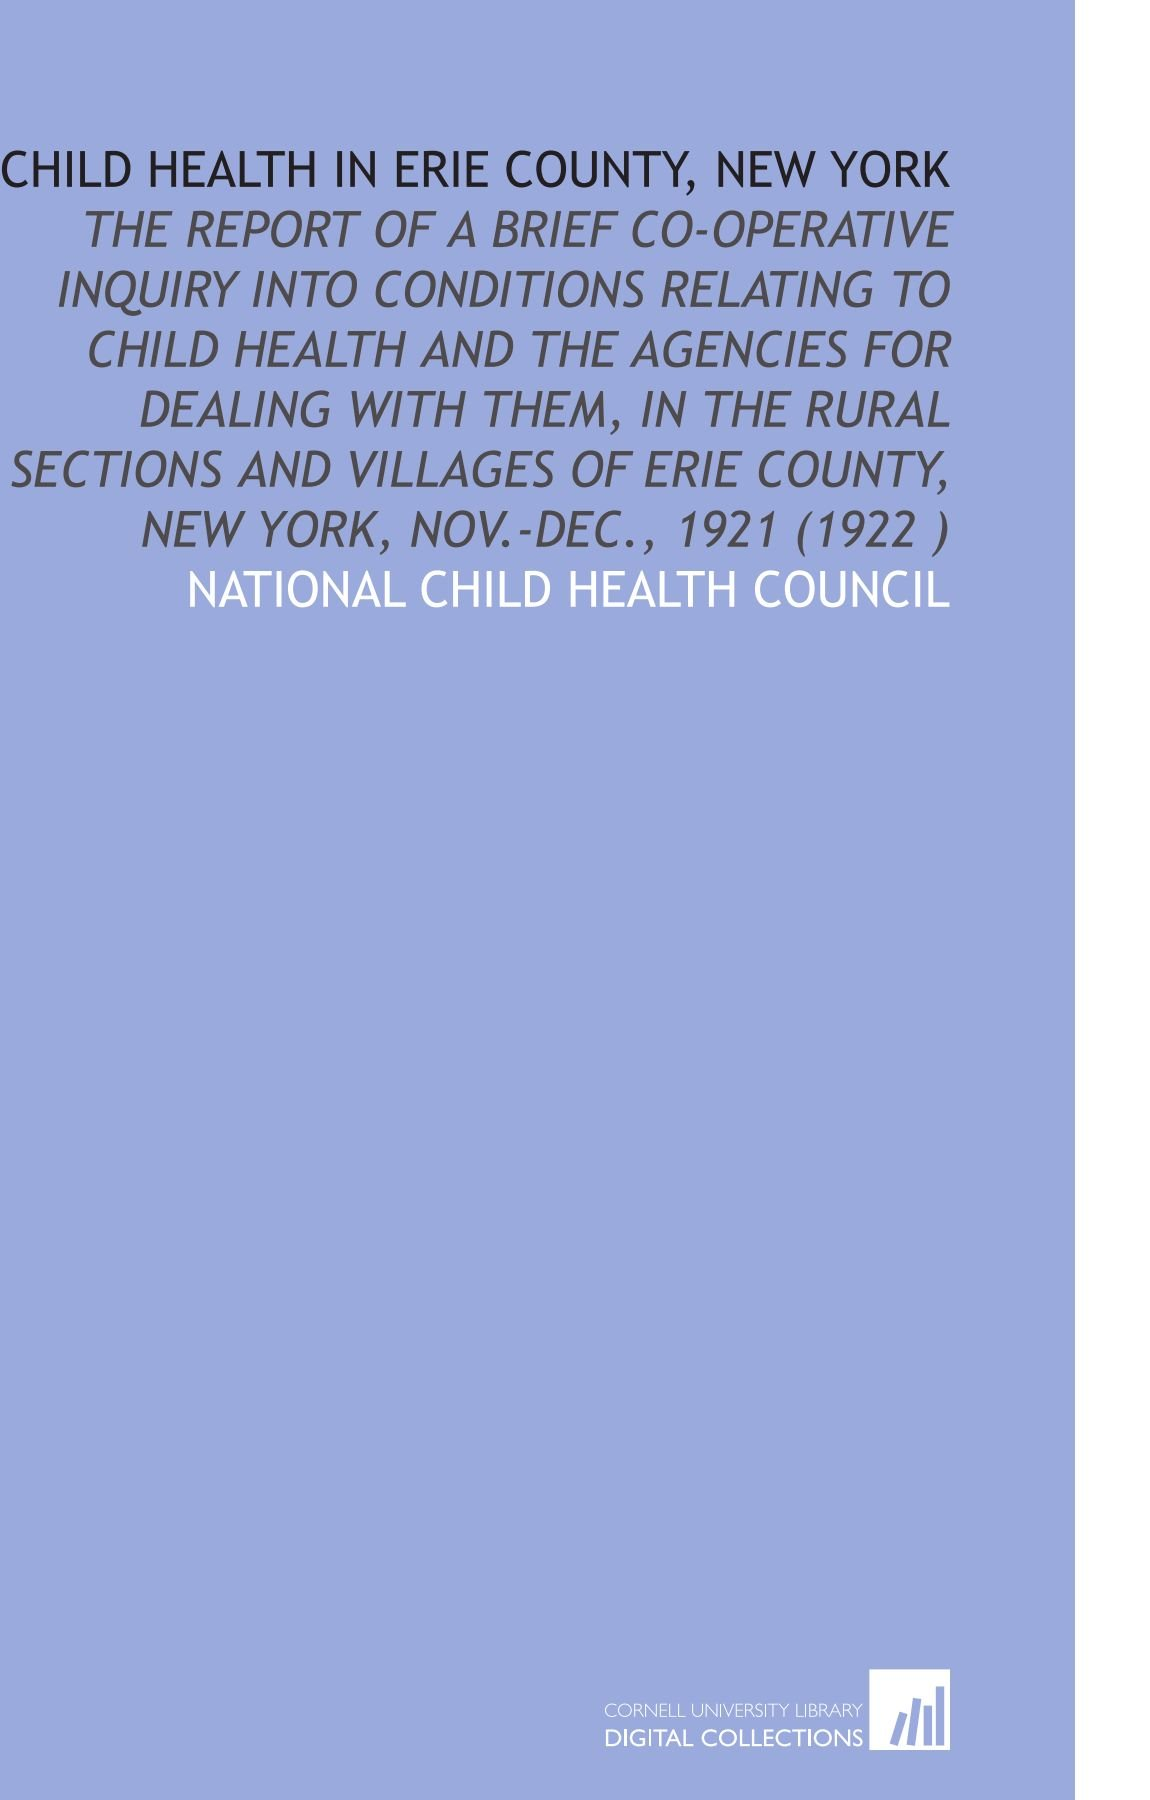 Download Child Health in Erie County, New York: The Report of a Brief Co-Operative Inquiry Into Conditions Relating to Child Health and the Agencies for ... County, New York, Nov.-Dec., 1921 (1922 ) pdf